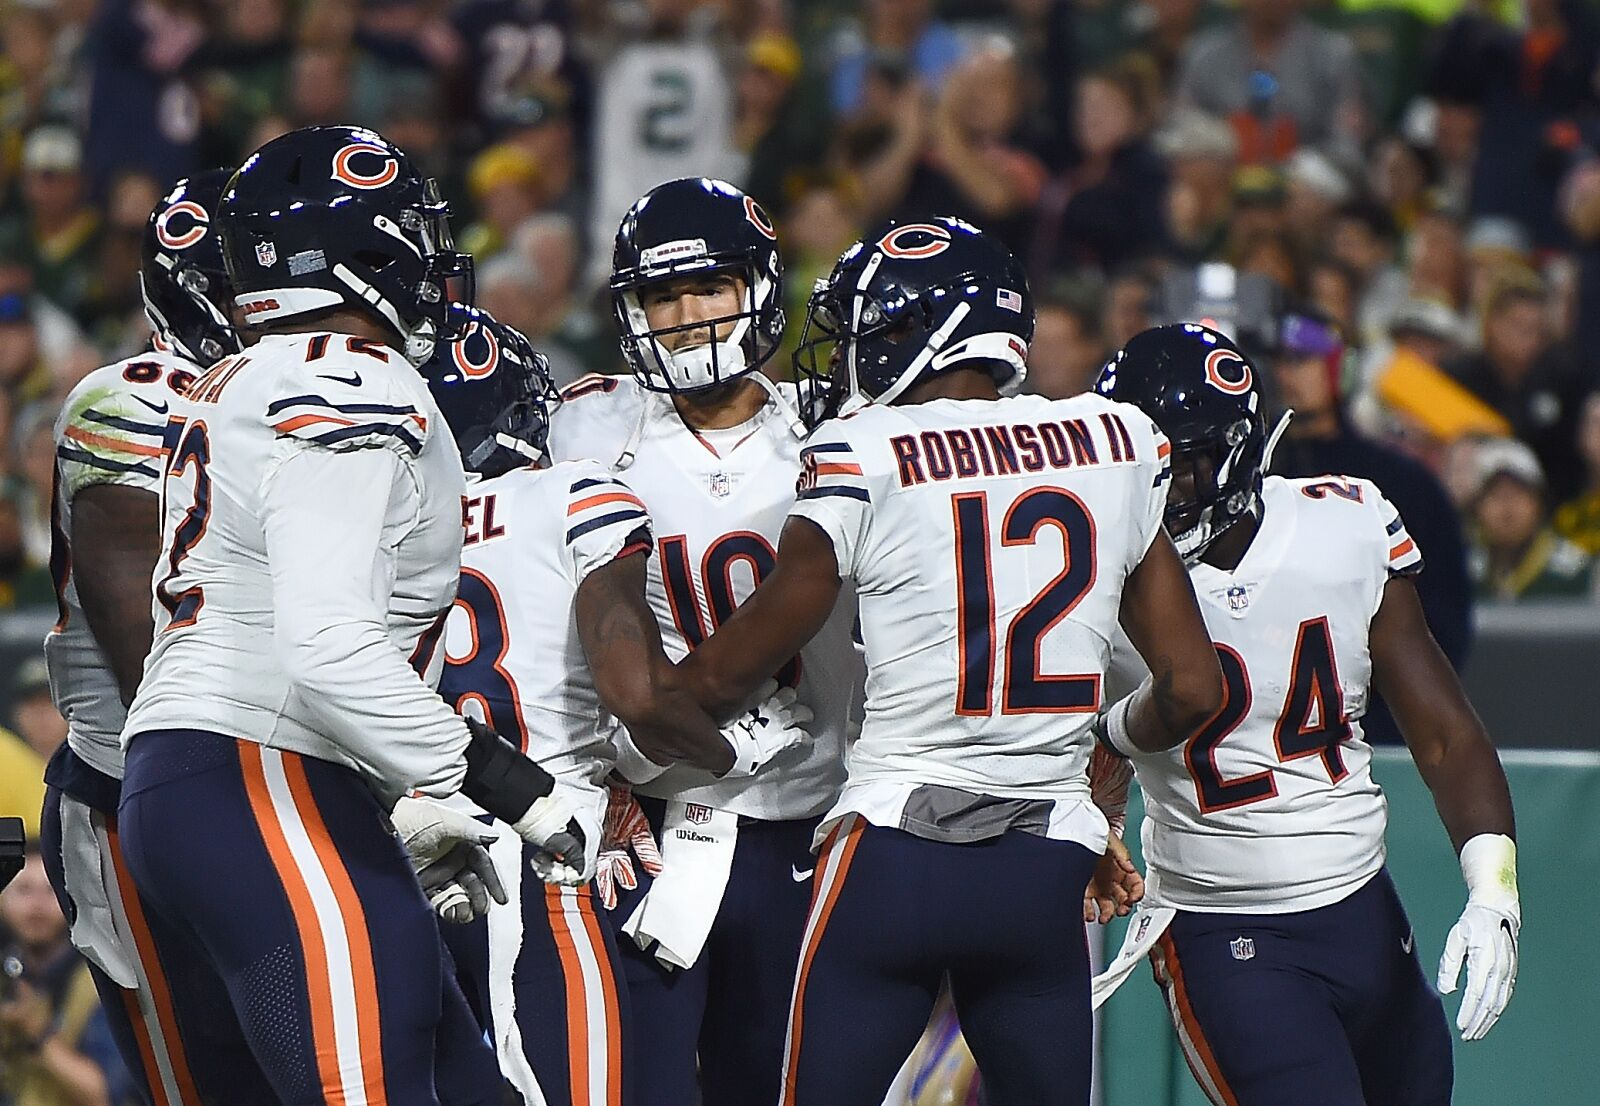 Five Positives from Chicago Bears Crushing Loss to Green Bay Packers